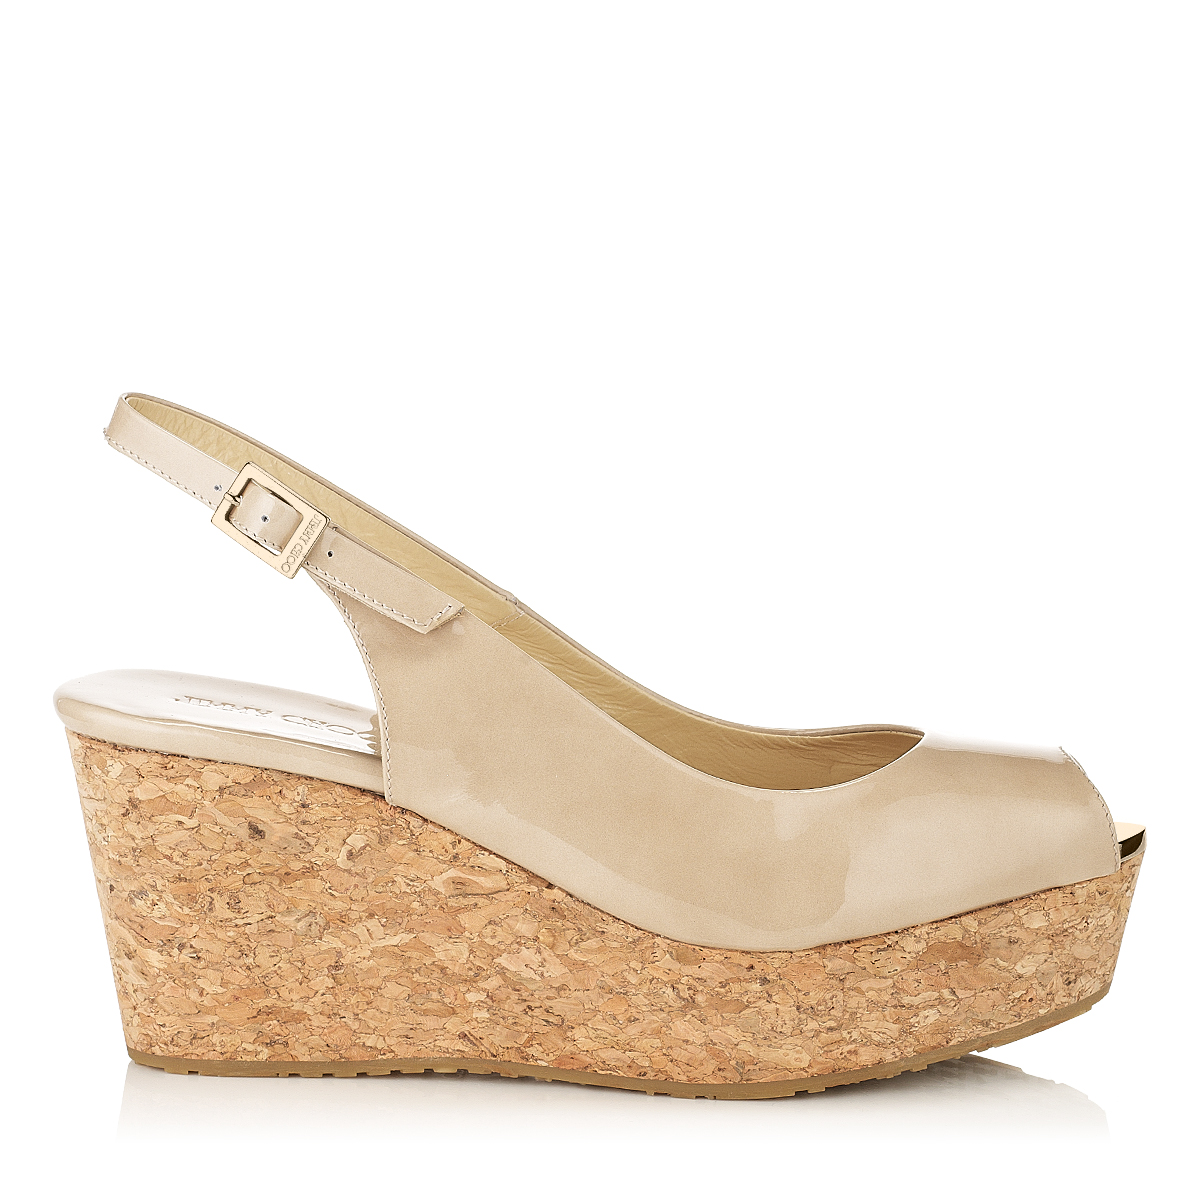 c0f6746e288c Nude Wedges With Strap - Buy Best Nude Wedges With Strap from Fashion  Influencers